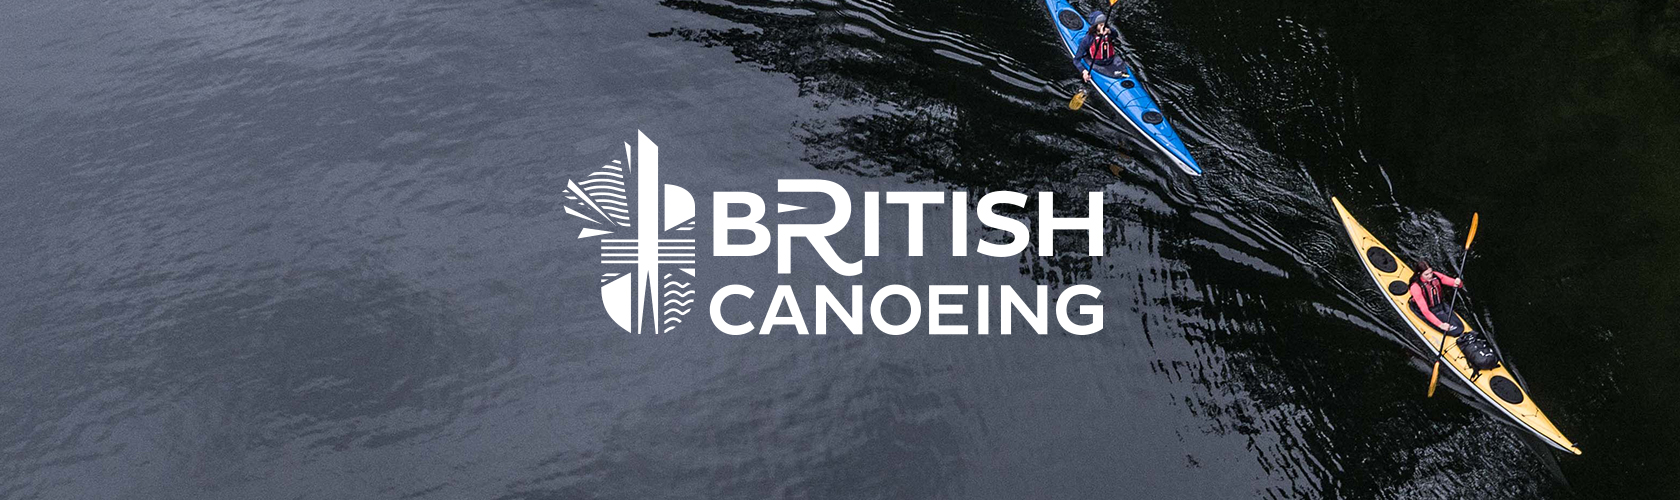 British Canoeing - person in a canoe on a lake